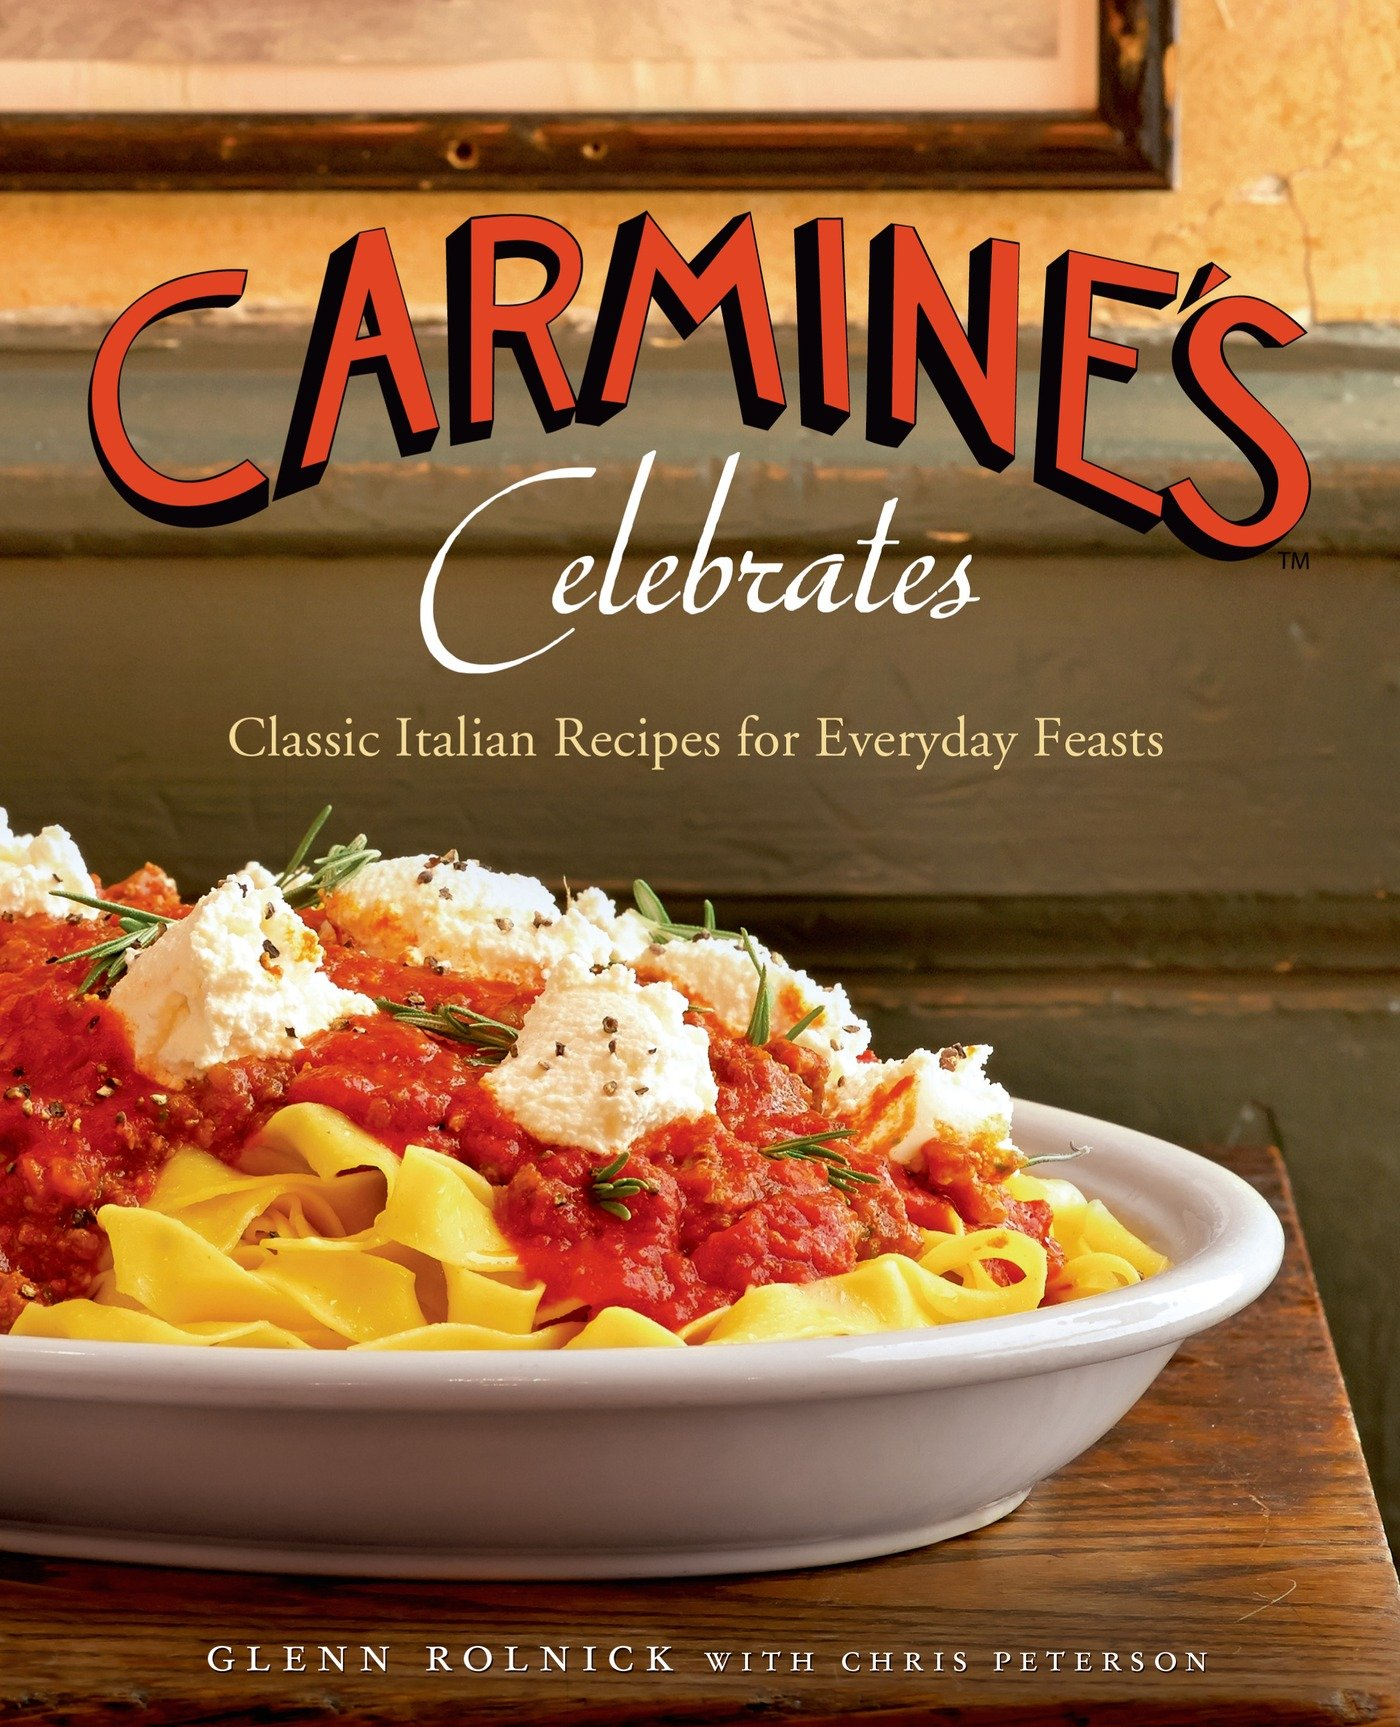 Gifts for the cookbook lover some of my favorite cookbooks to carmines celebrates classic italian recipes for everyday feasts by glenn rolnick forumfinder Gallery